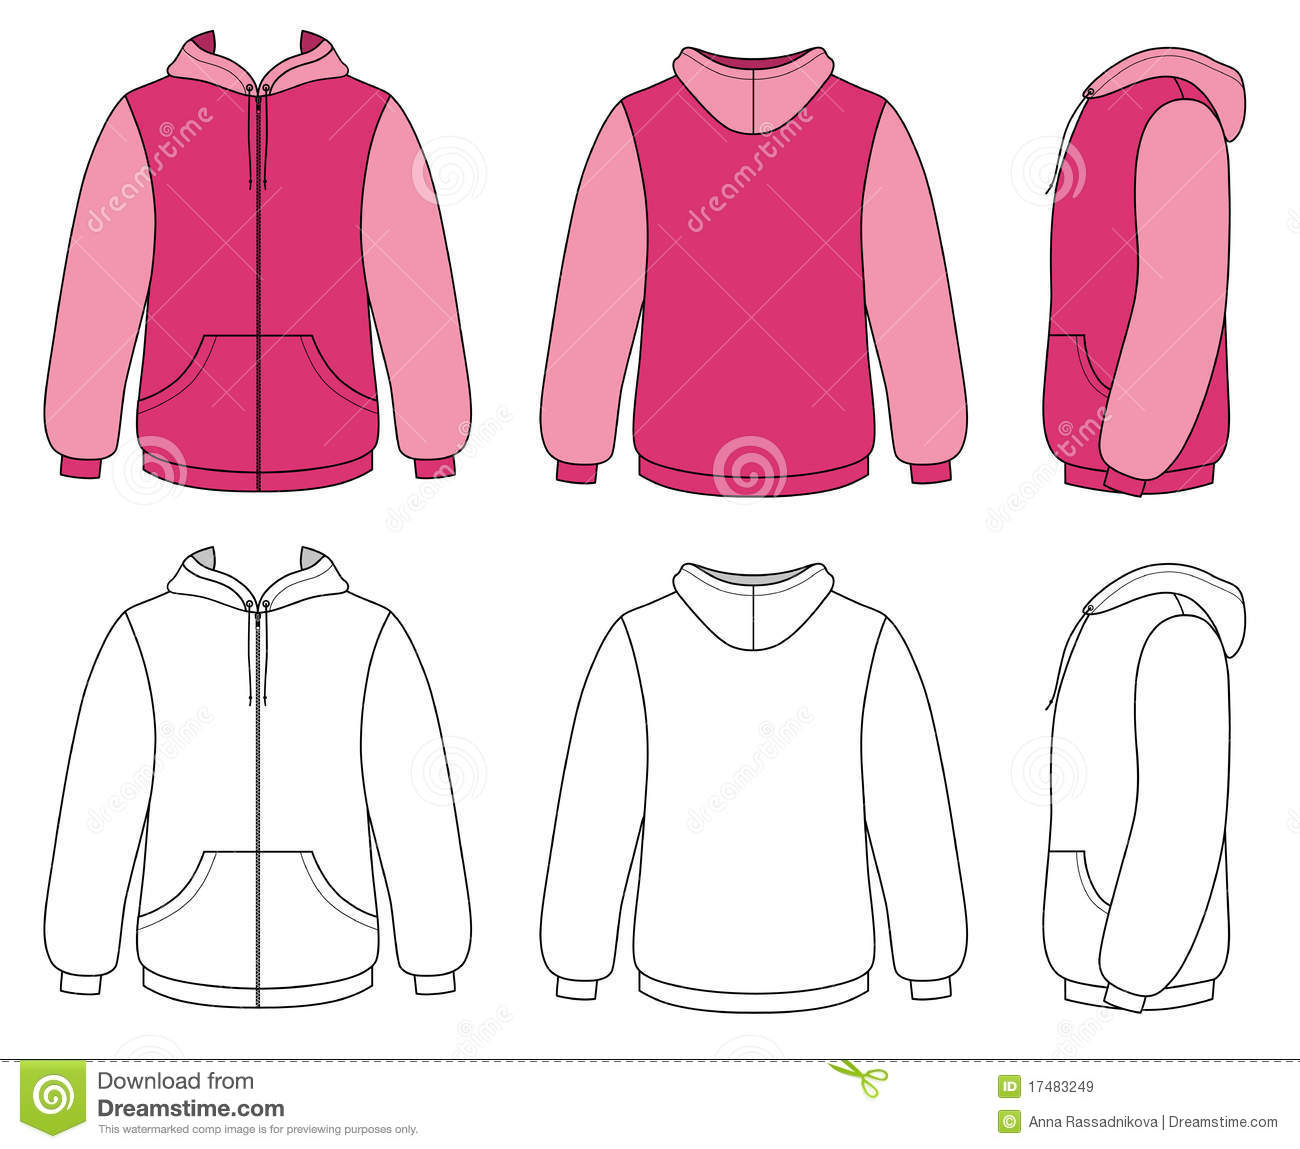 Hoodie Or Sweatshirt Template With Zipper Stock Vector ...